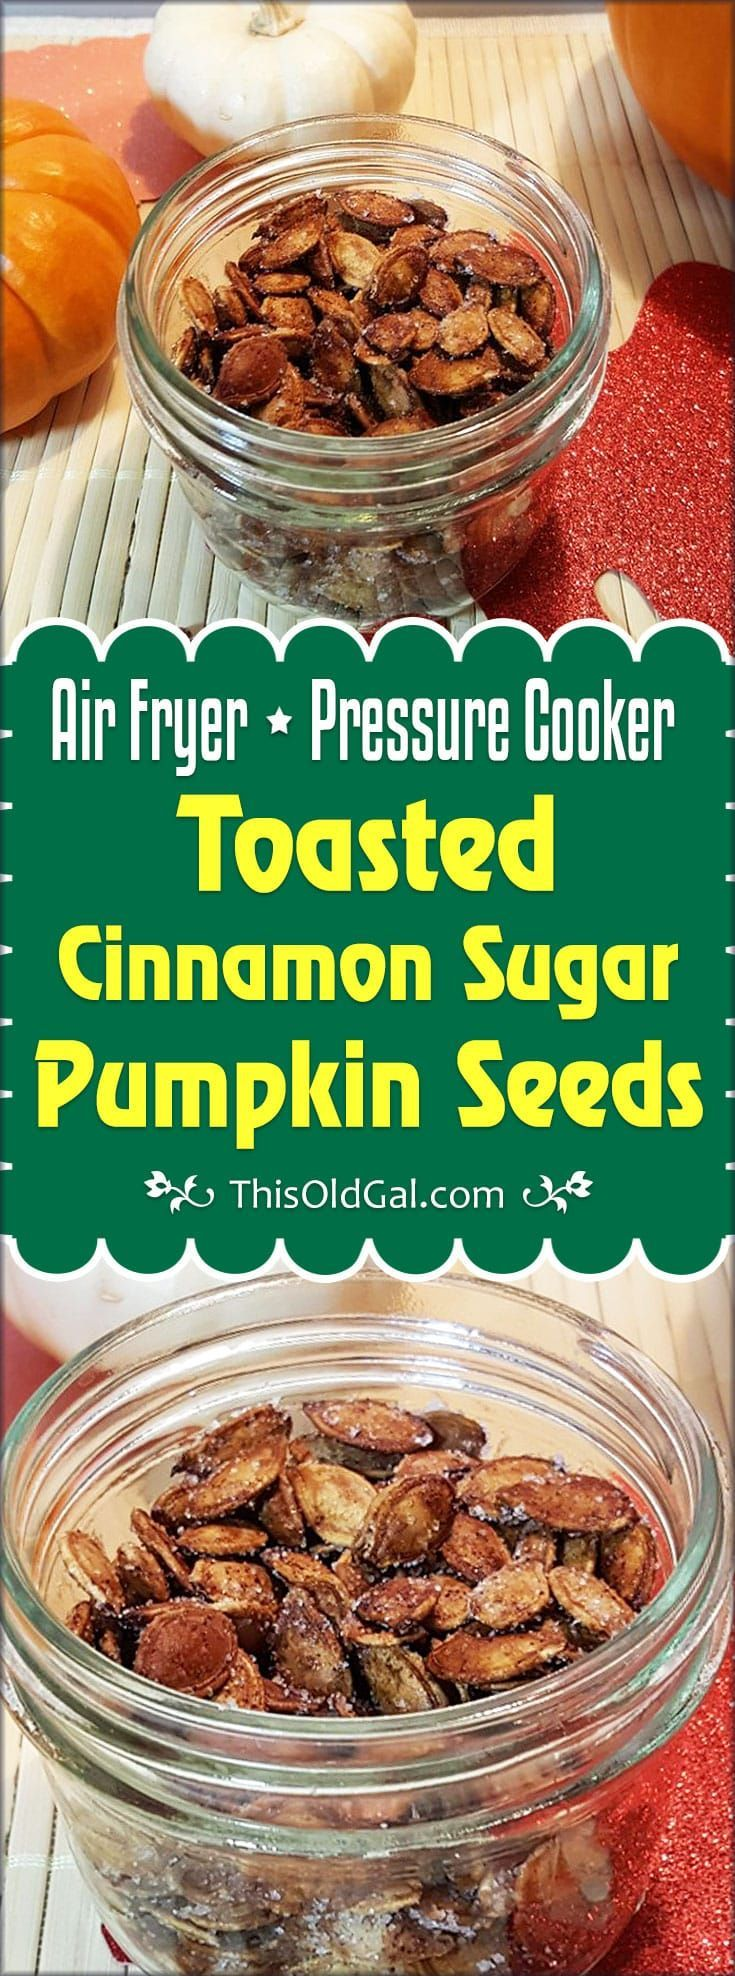 Crunchy Toasted Cinnamon Sugar Pumpkin Seeds make a sweet and healthy snack and satisfy your sweet tooth, without adding on the pounds. #pumpkinseedsrecipebaked Crunchy Toasted Cinnamon Sugar Pumpkin Seeds make a sweet and healthy snack and satisfy your sweet tooth, without adding on the pounds. #roastedpumpkinseedsrecipe